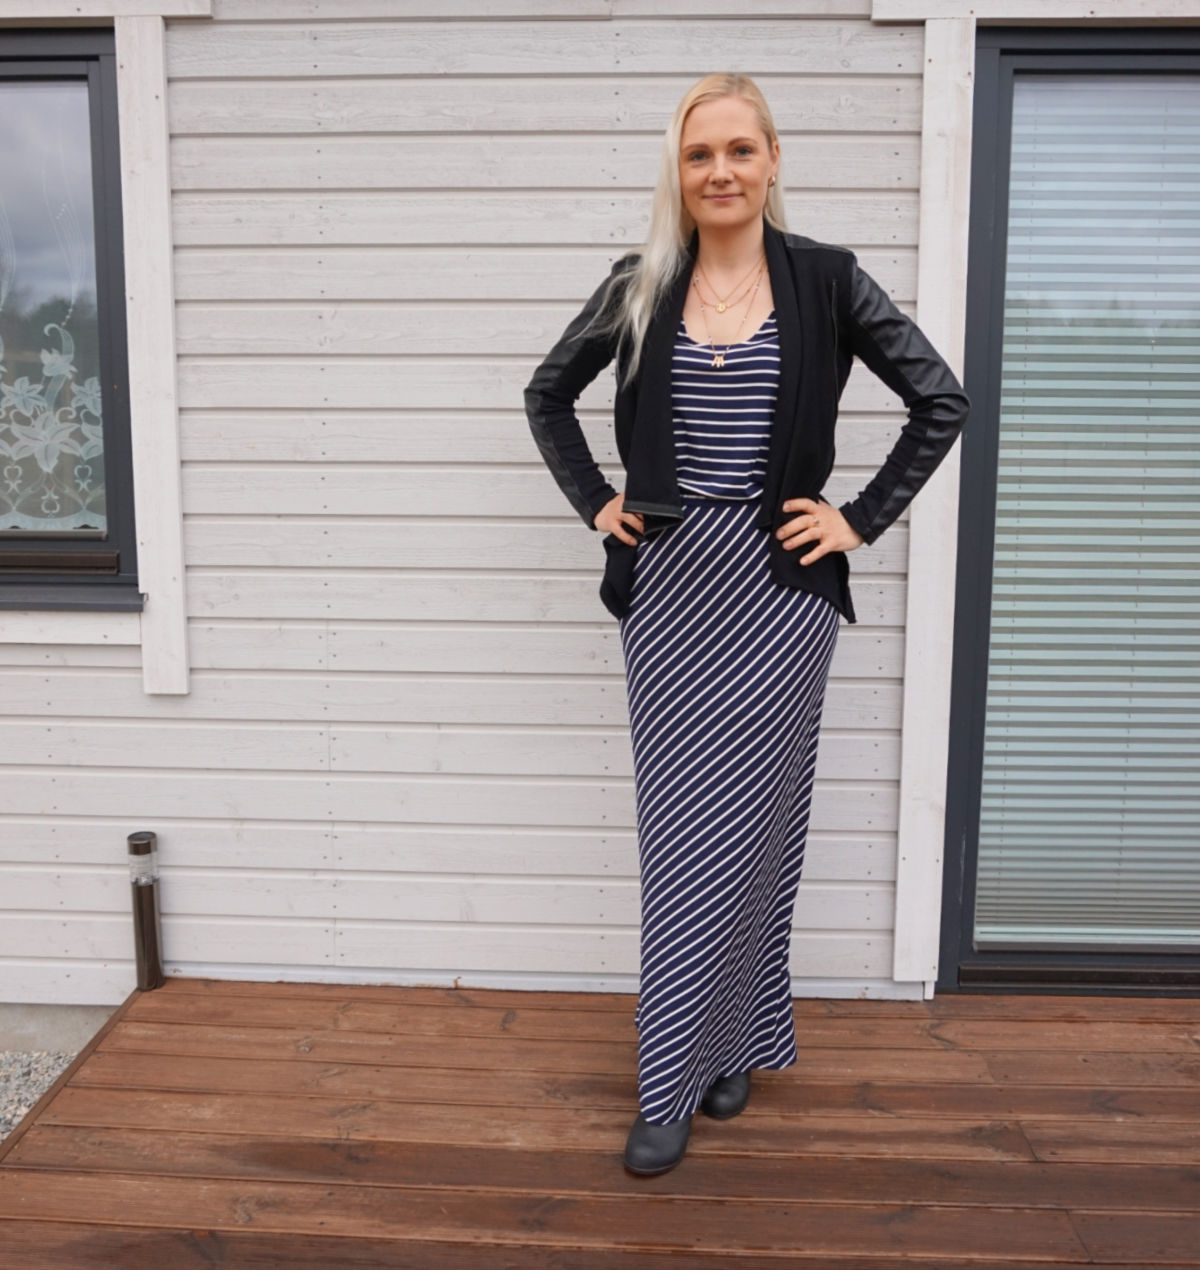 Striped maxi dress and black vegan leather and ponte jacket outfit for spring 2021.